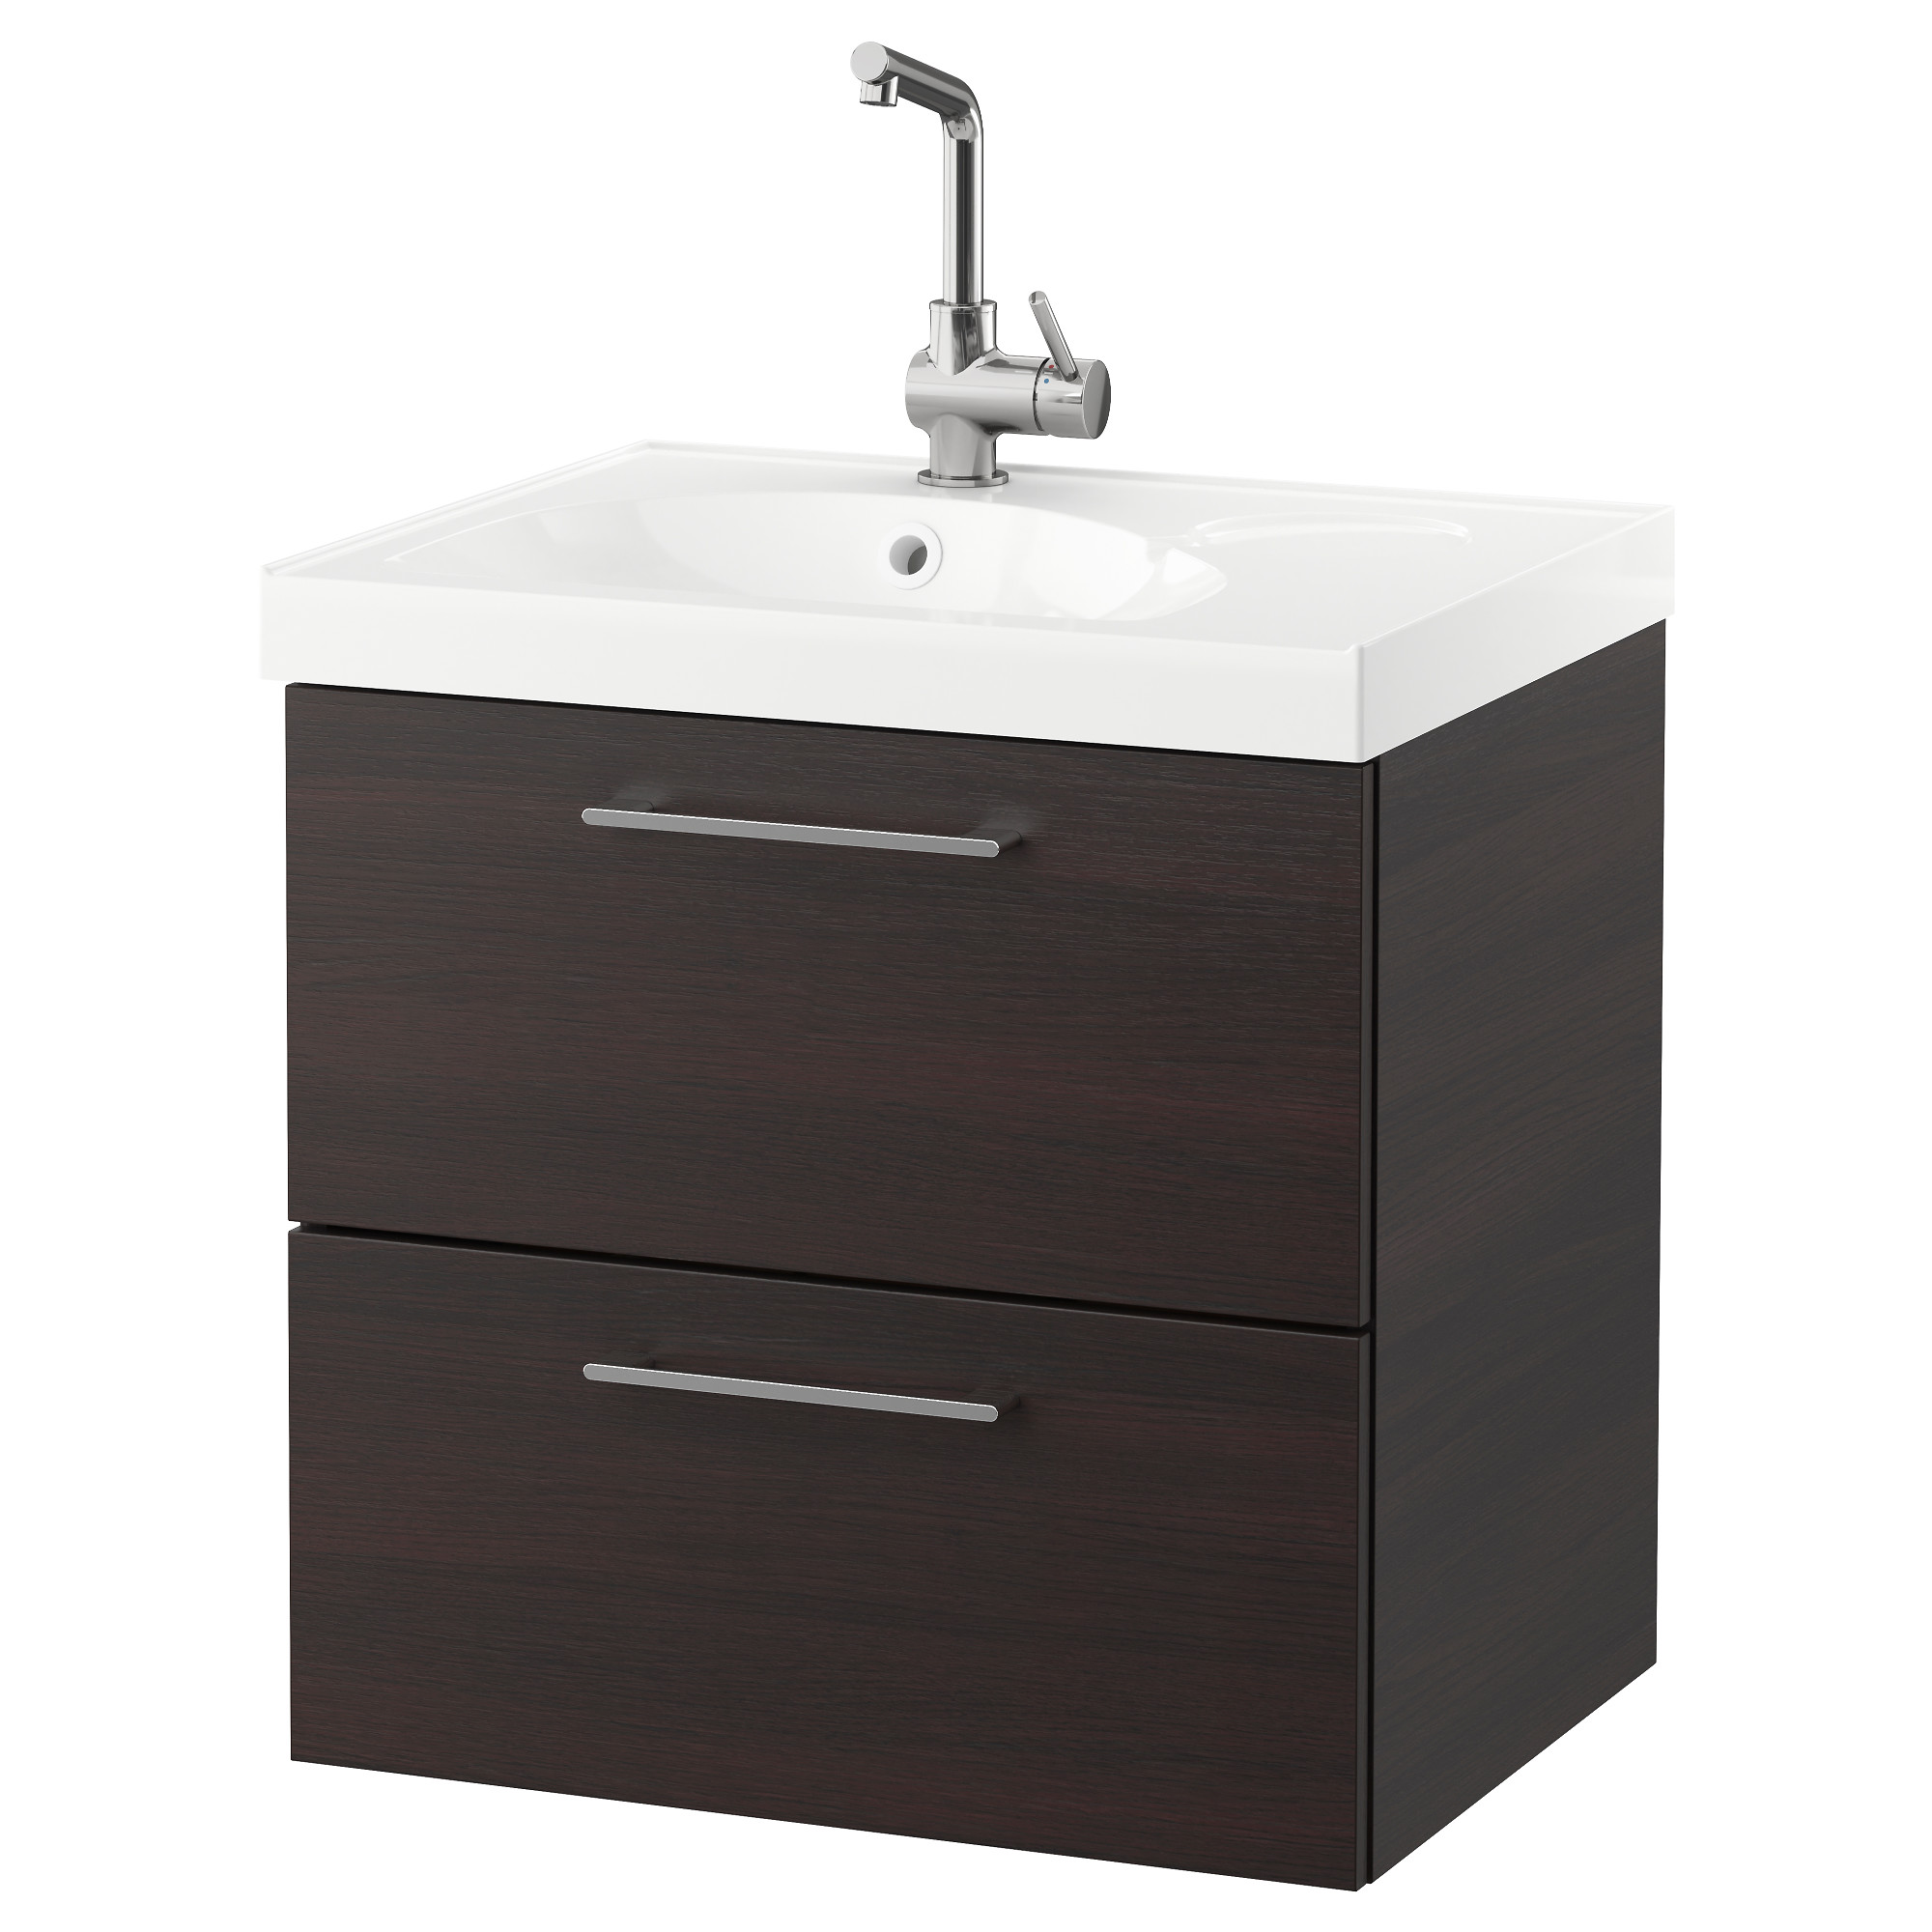 Bathroom Vanities Countertops Ikea